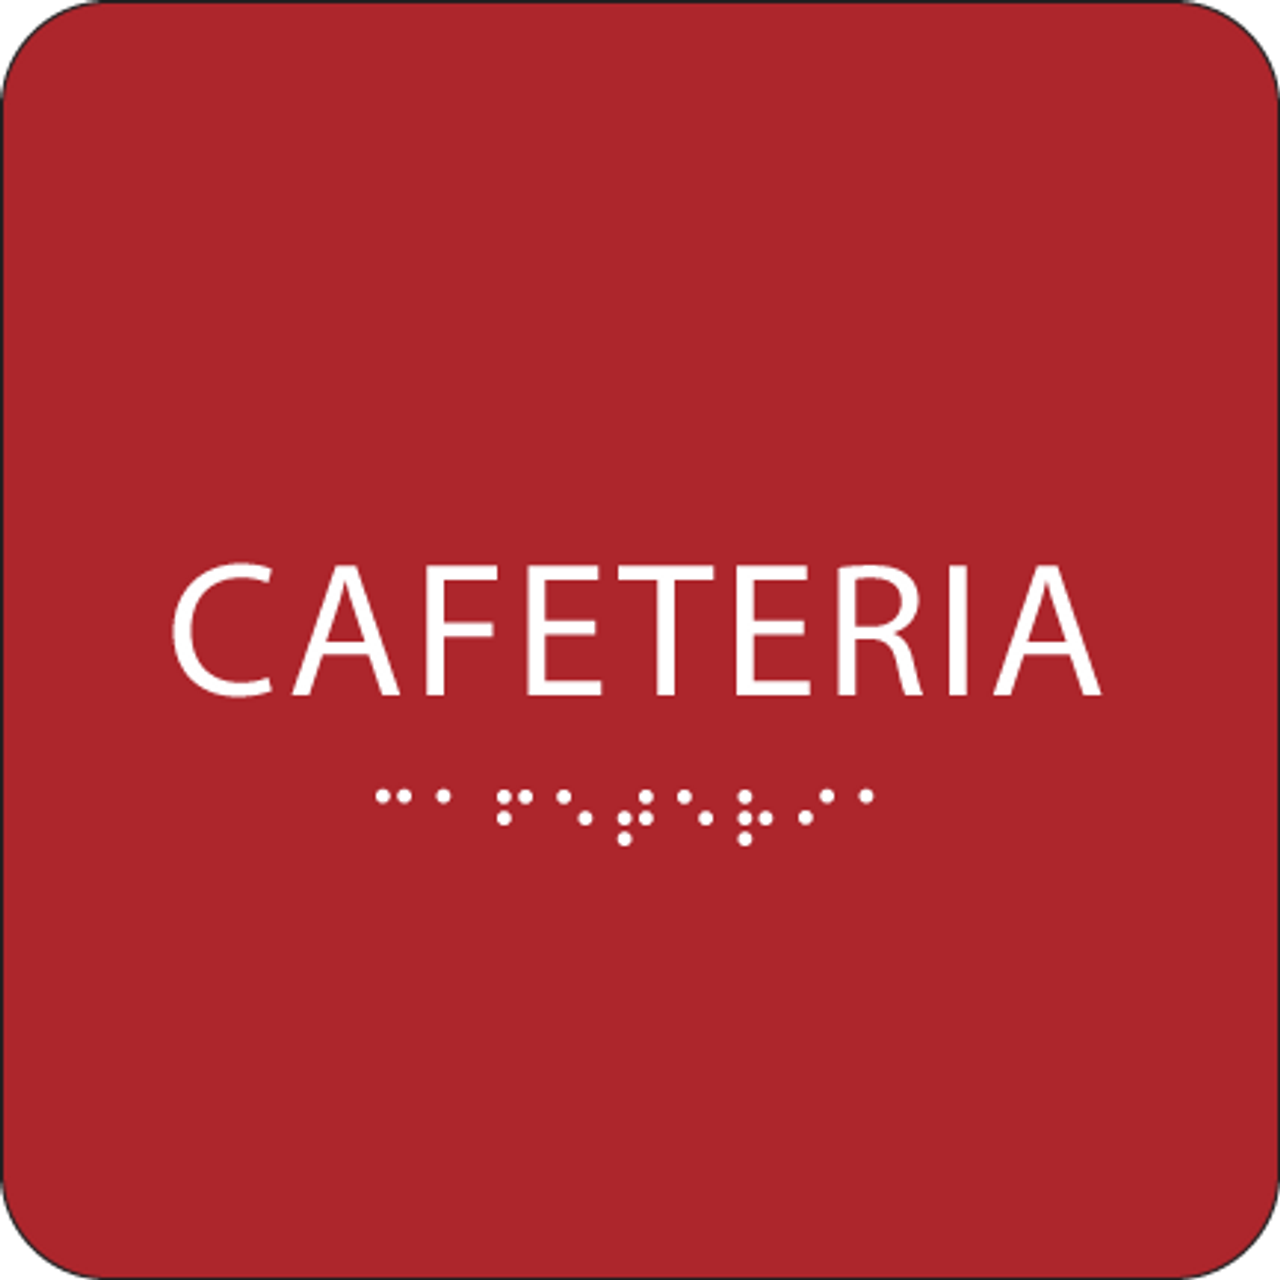 Red Cafeteria ADA Sign